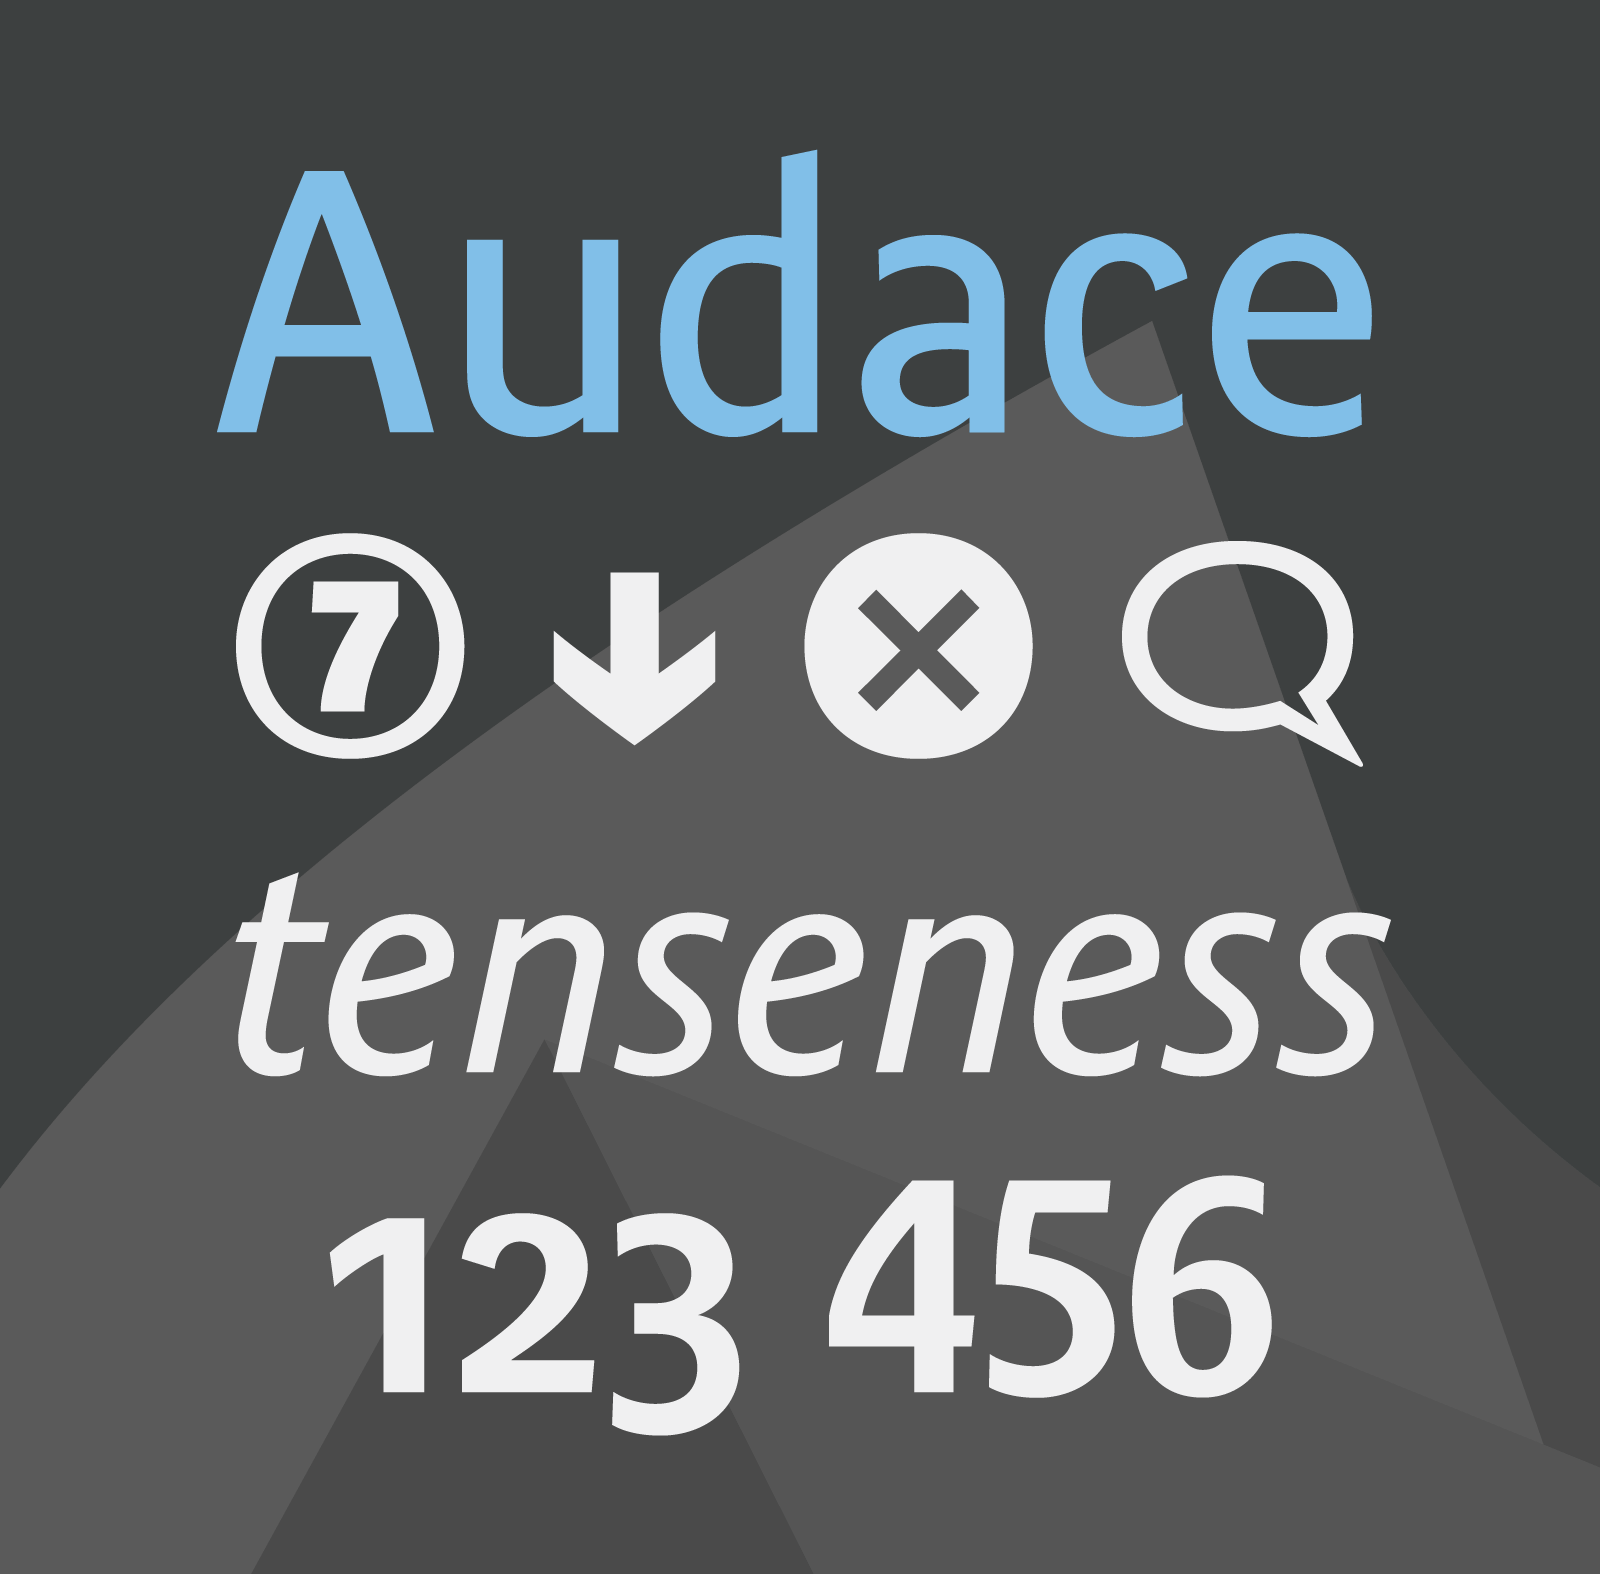 Audace, between geometry & shapes inspired by nature by Jean François Porchez